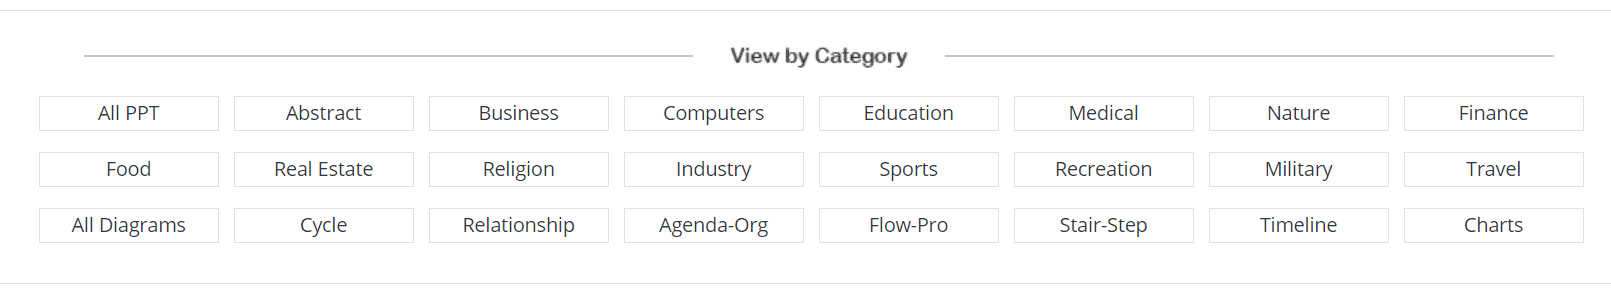 presentation- view by category